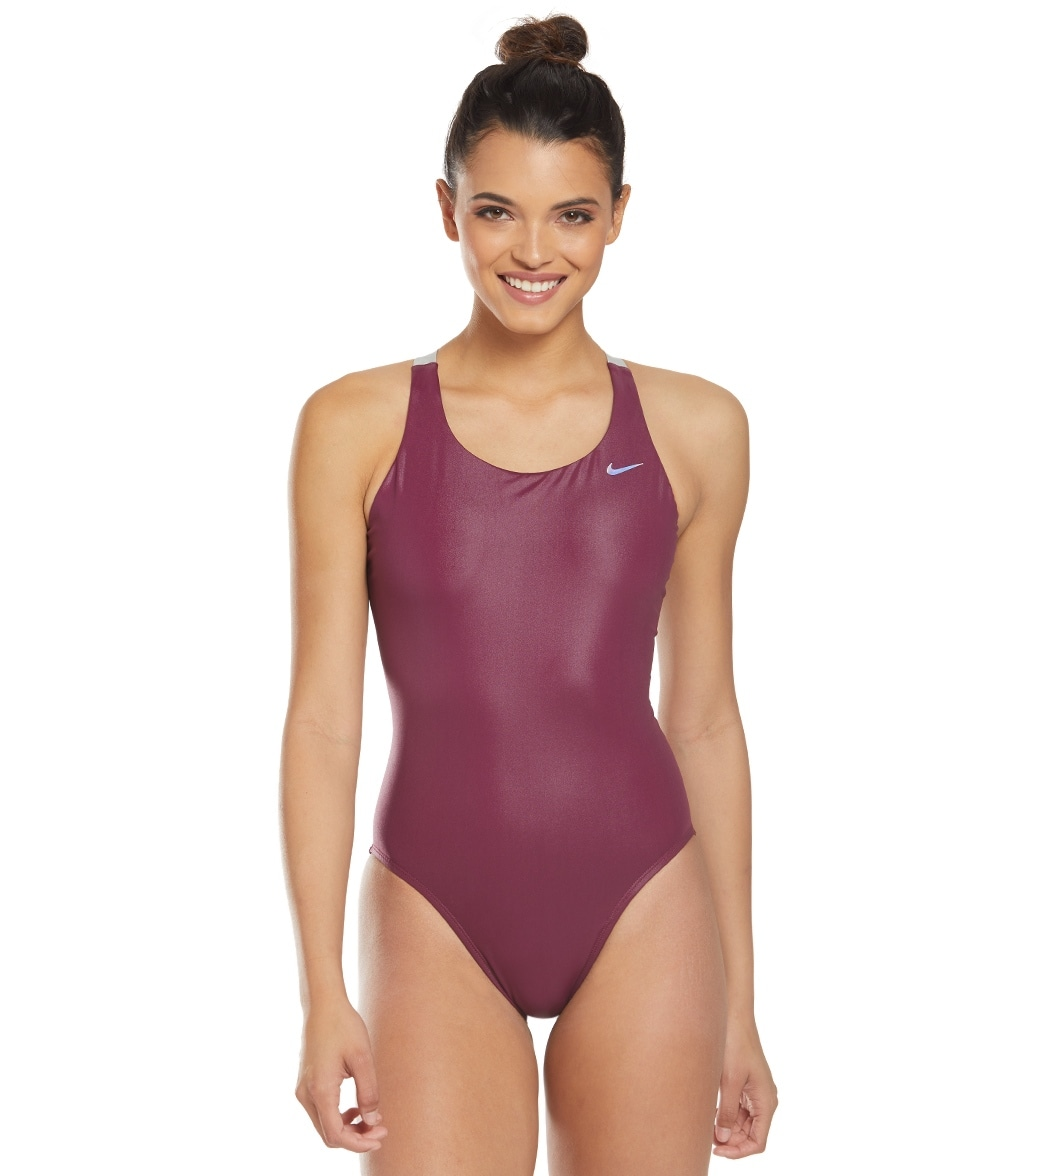 67768b51e9e Nike Women's Flash Bonded Fast Back One Piece Swimsuit at SwimOutlet.com -  Free Shipping